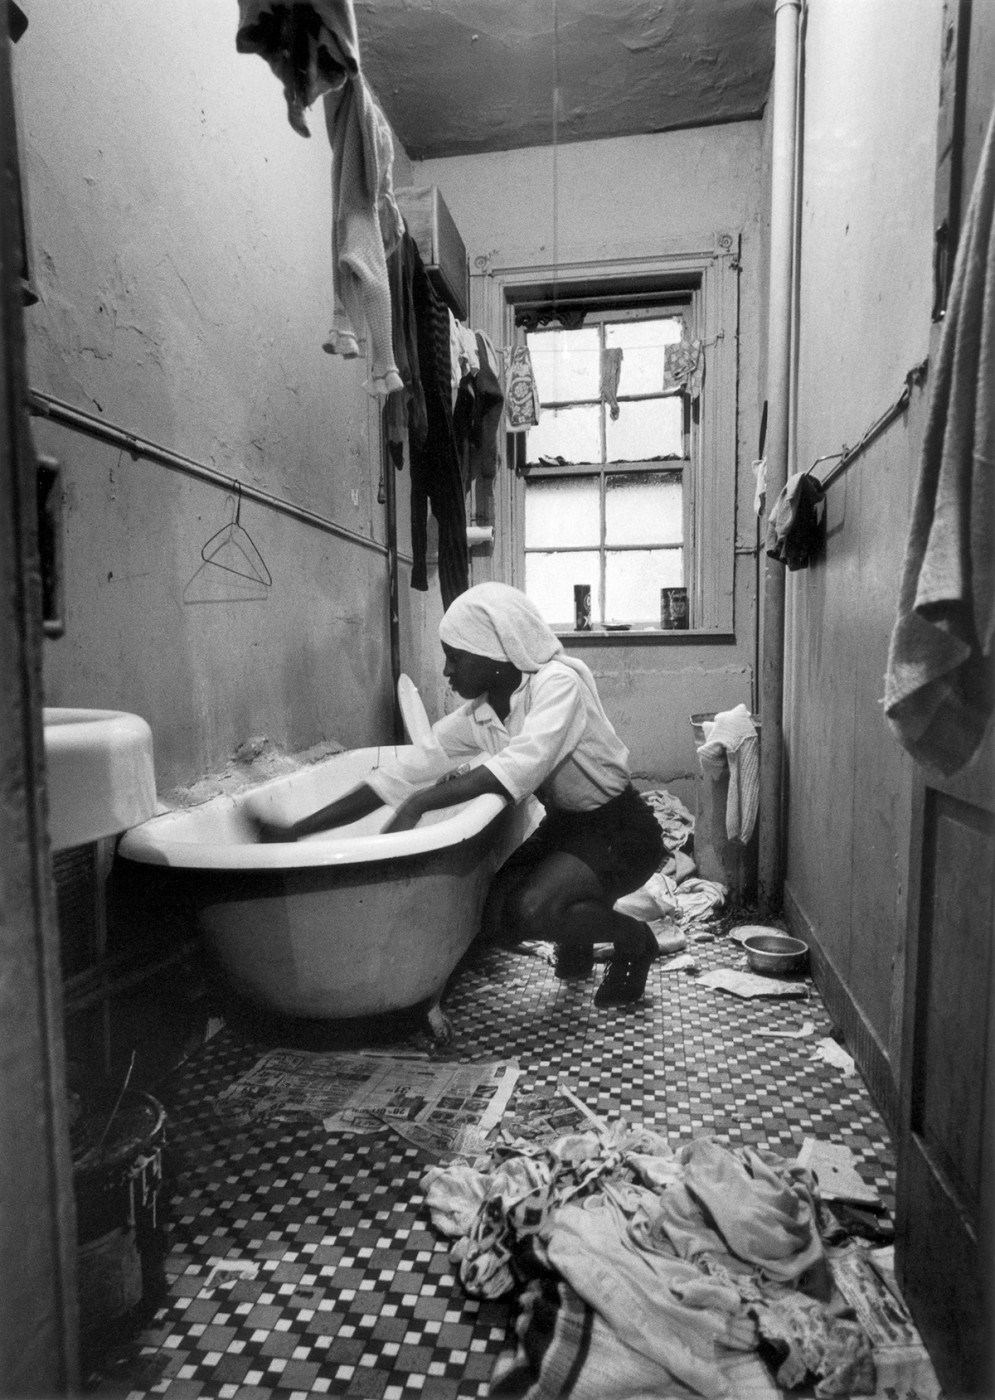 Gordon Parks, </span><span><em>Rosie Fontenelle Cleans the Bathtub, New York</em>, </span><span>1967. Gelatin silver print, 35.6 x 27.9cm. Courtesy of the Gordon Parks Foundation and Nicholas Metivier Gallery. © the Parks Foundation.